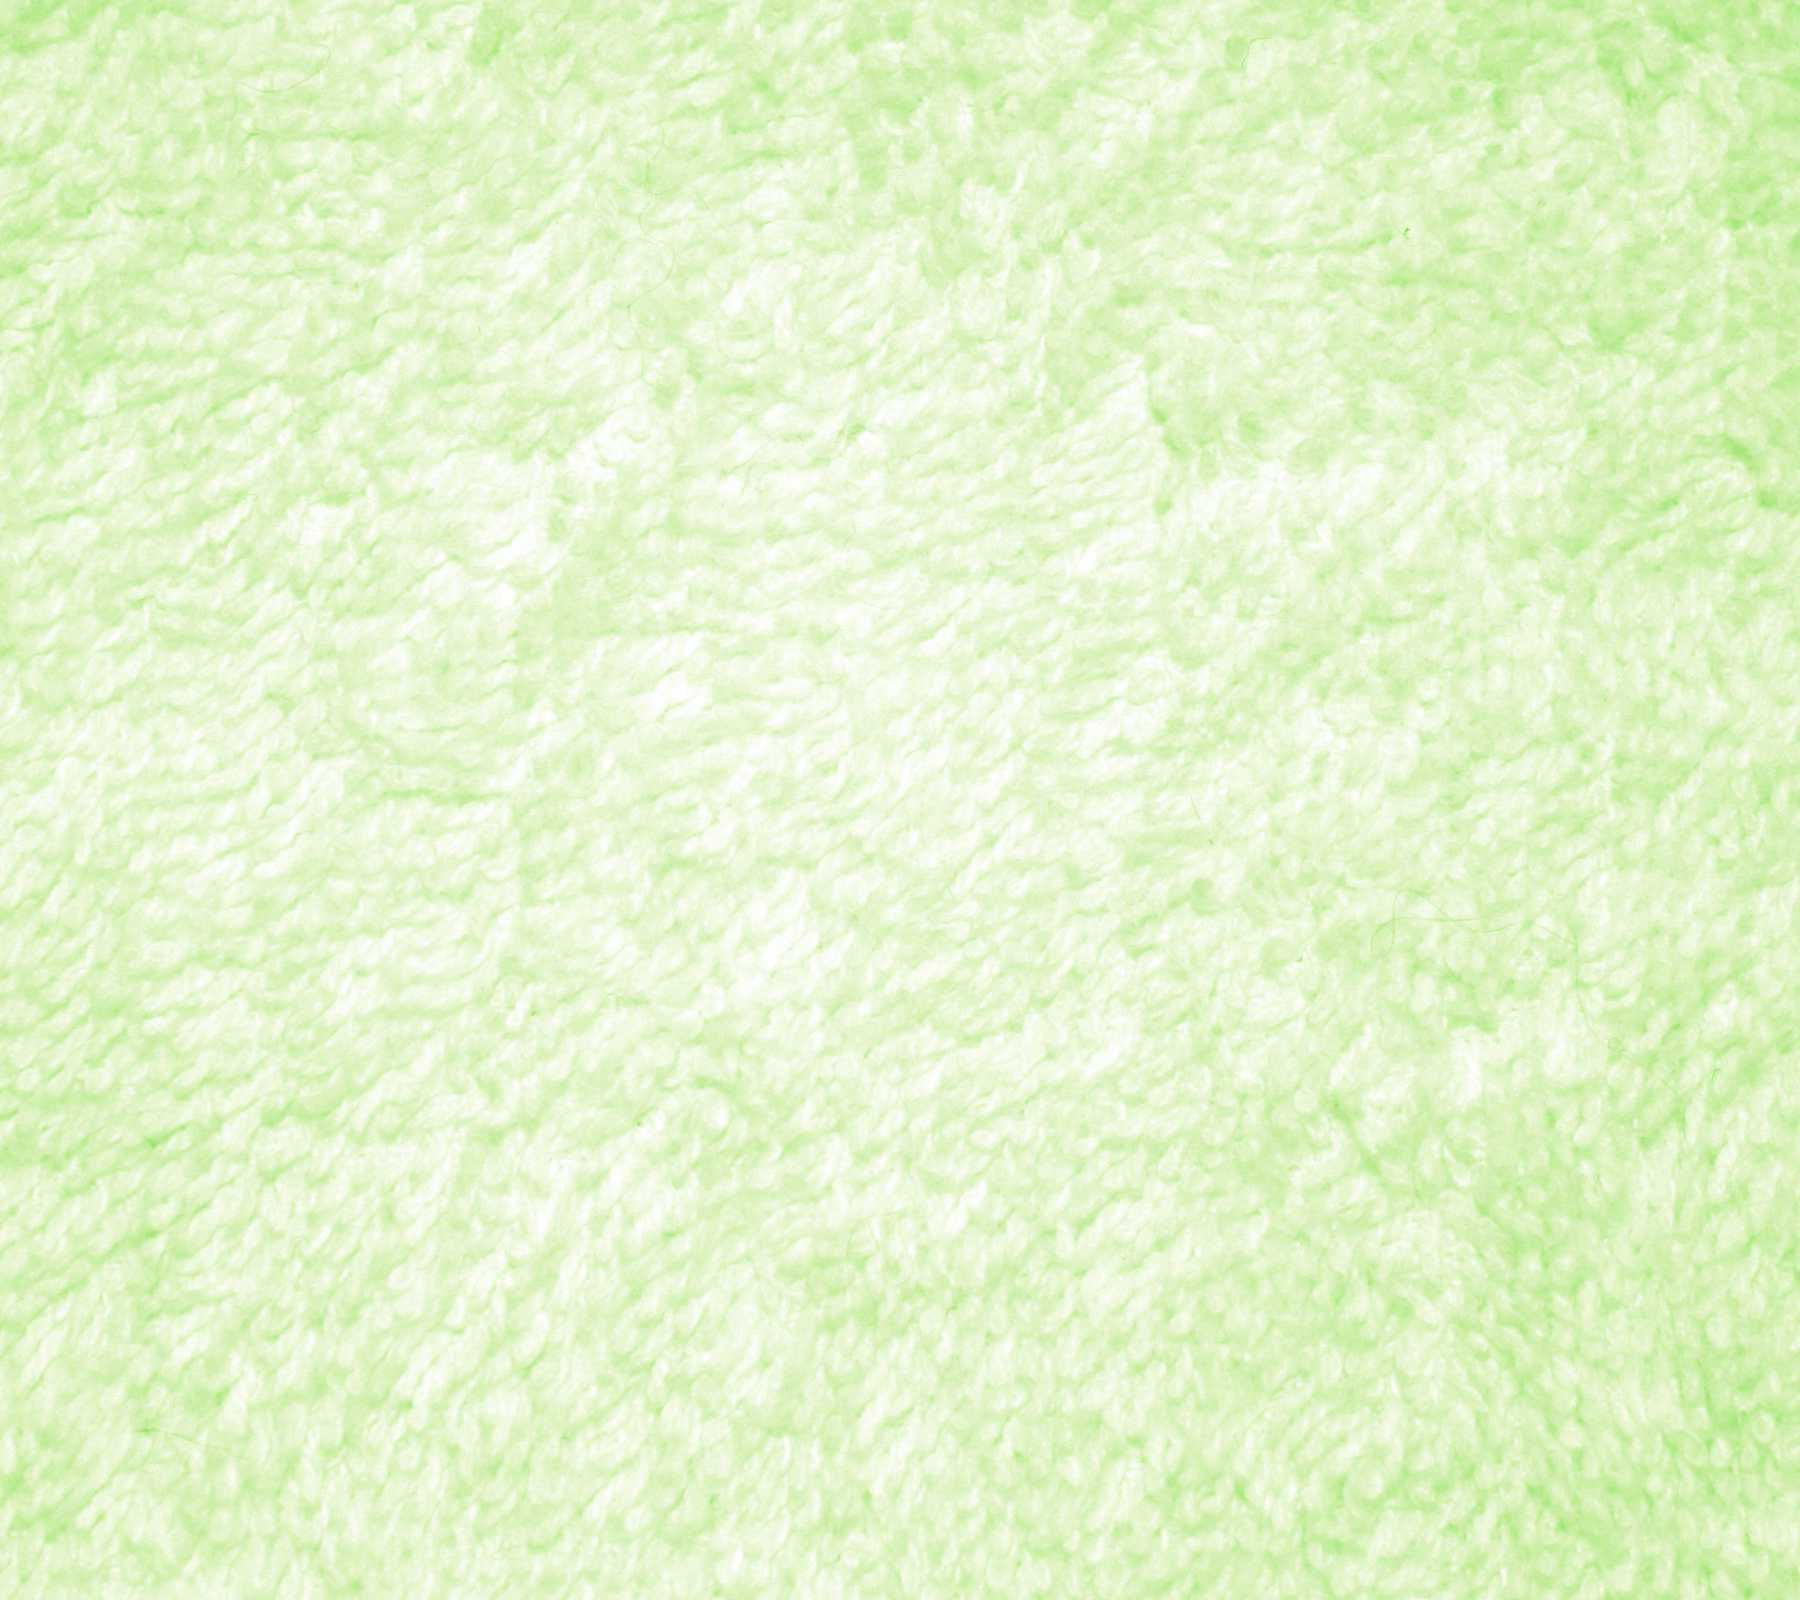 light green wallpaper designs - photo #33